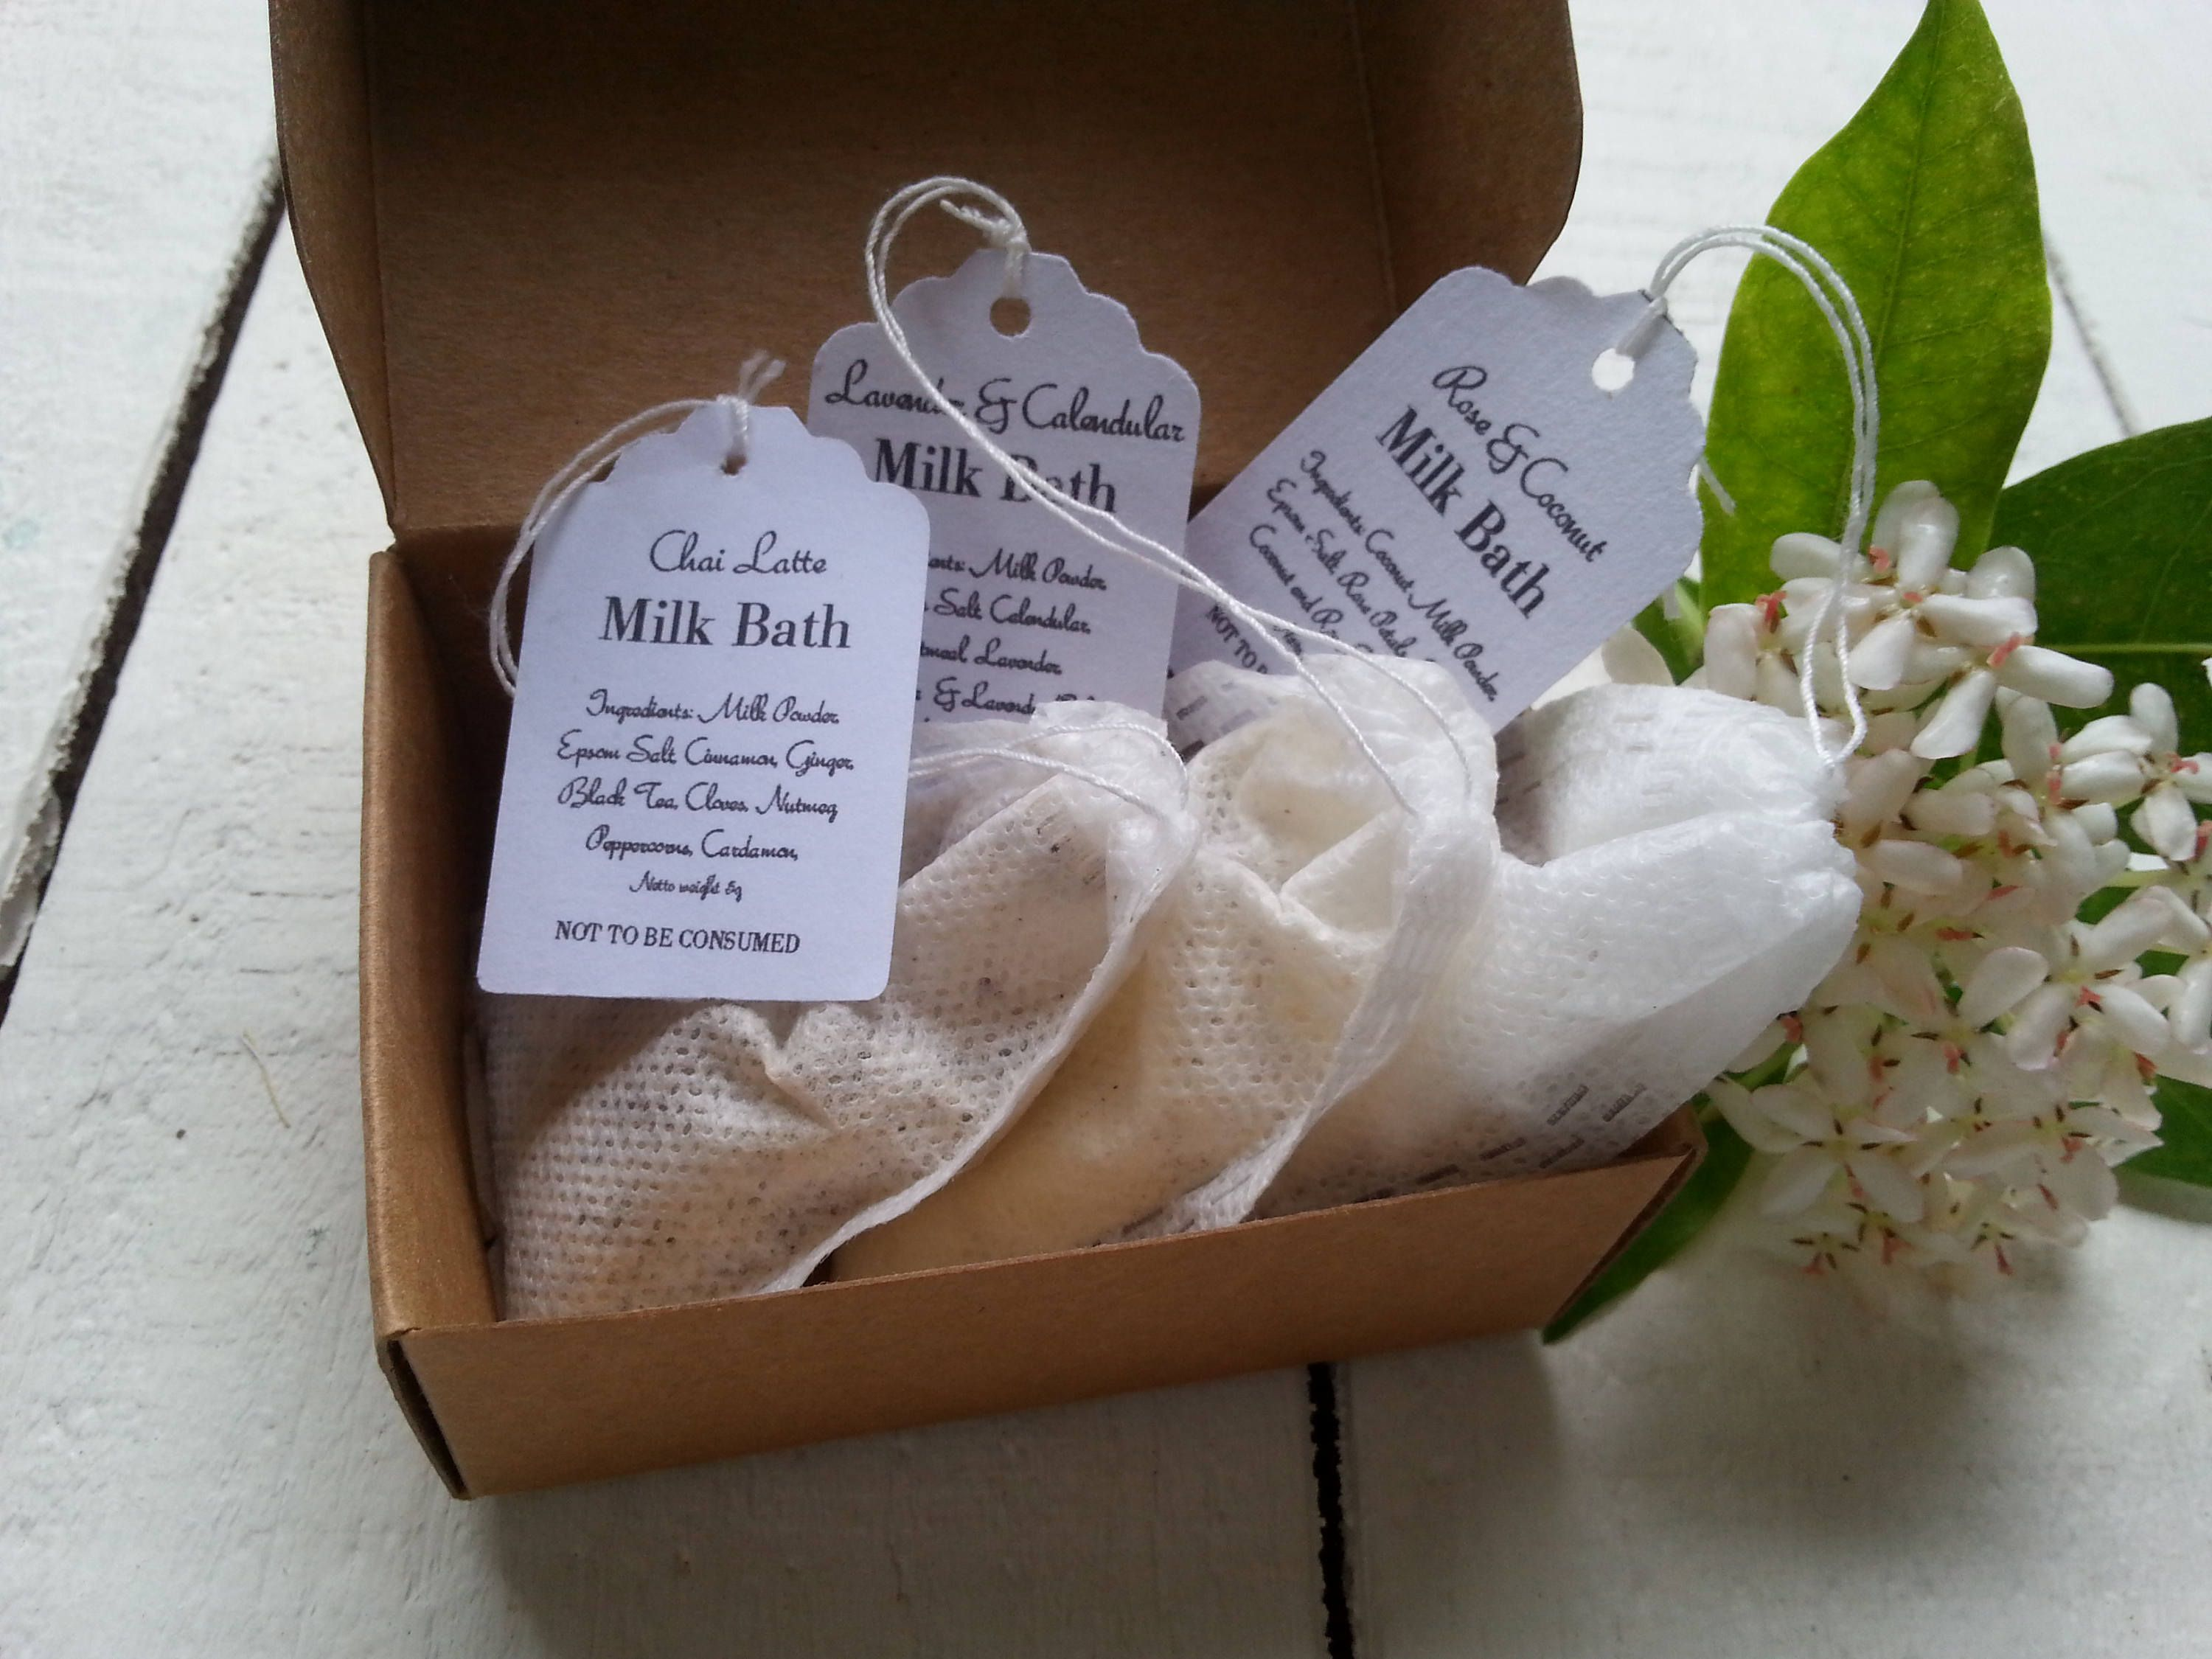 Wedding Favour Milk Bath Tea Bags, Wedding Bonbonniere Milk Bath Tea Bags, Bridesmaid Gift Bath Salt Tea Bags, Personalized Bath Salt Tea #fallmilkbath